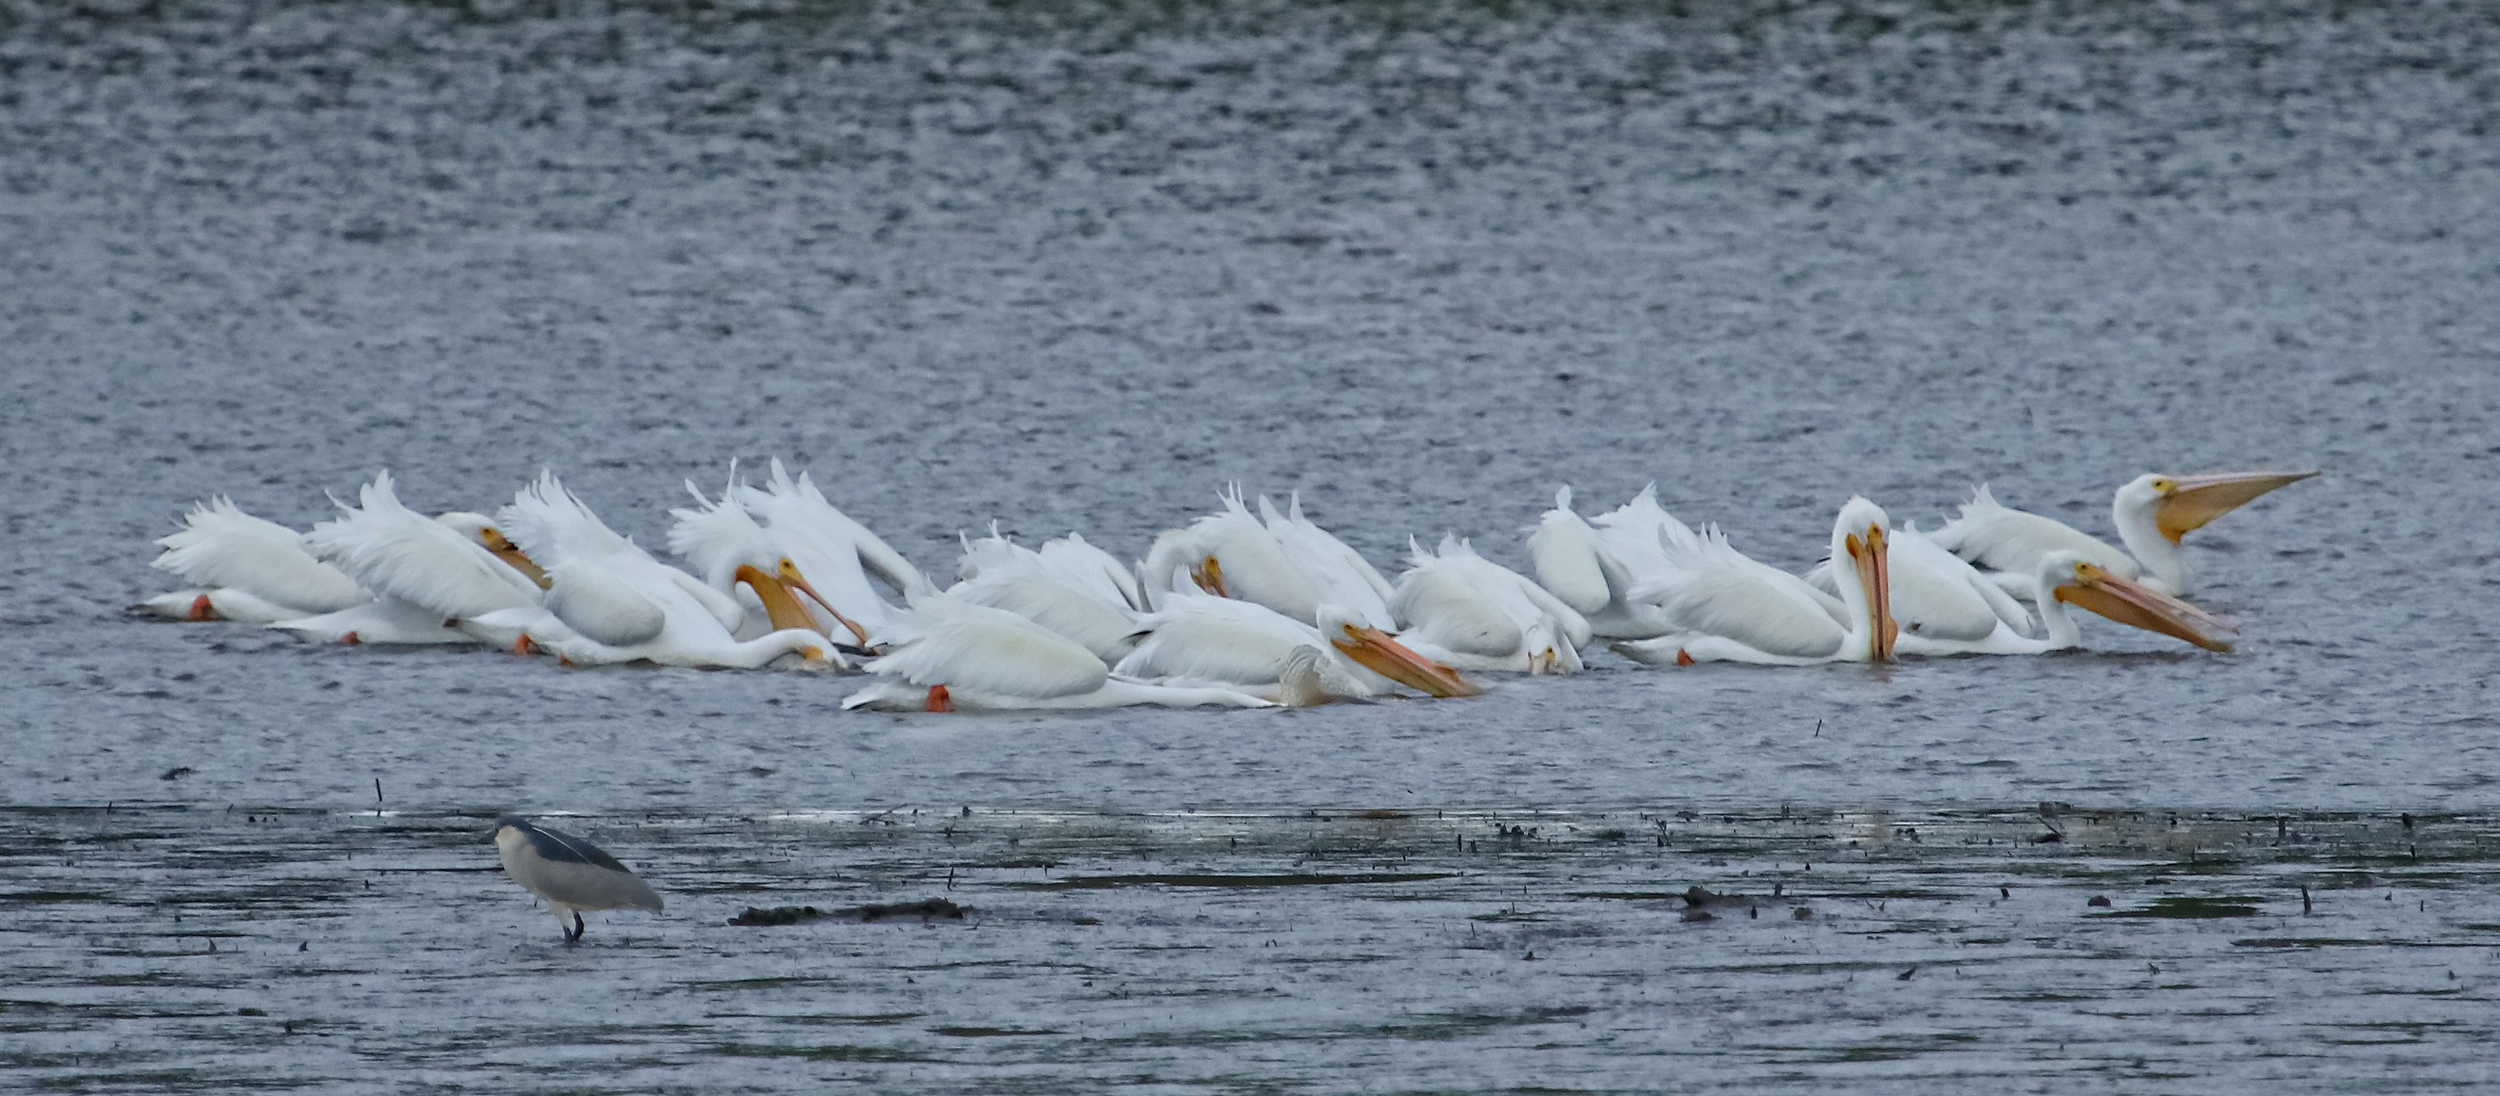 These White Pelicans are using the group and scoop method of fishin..